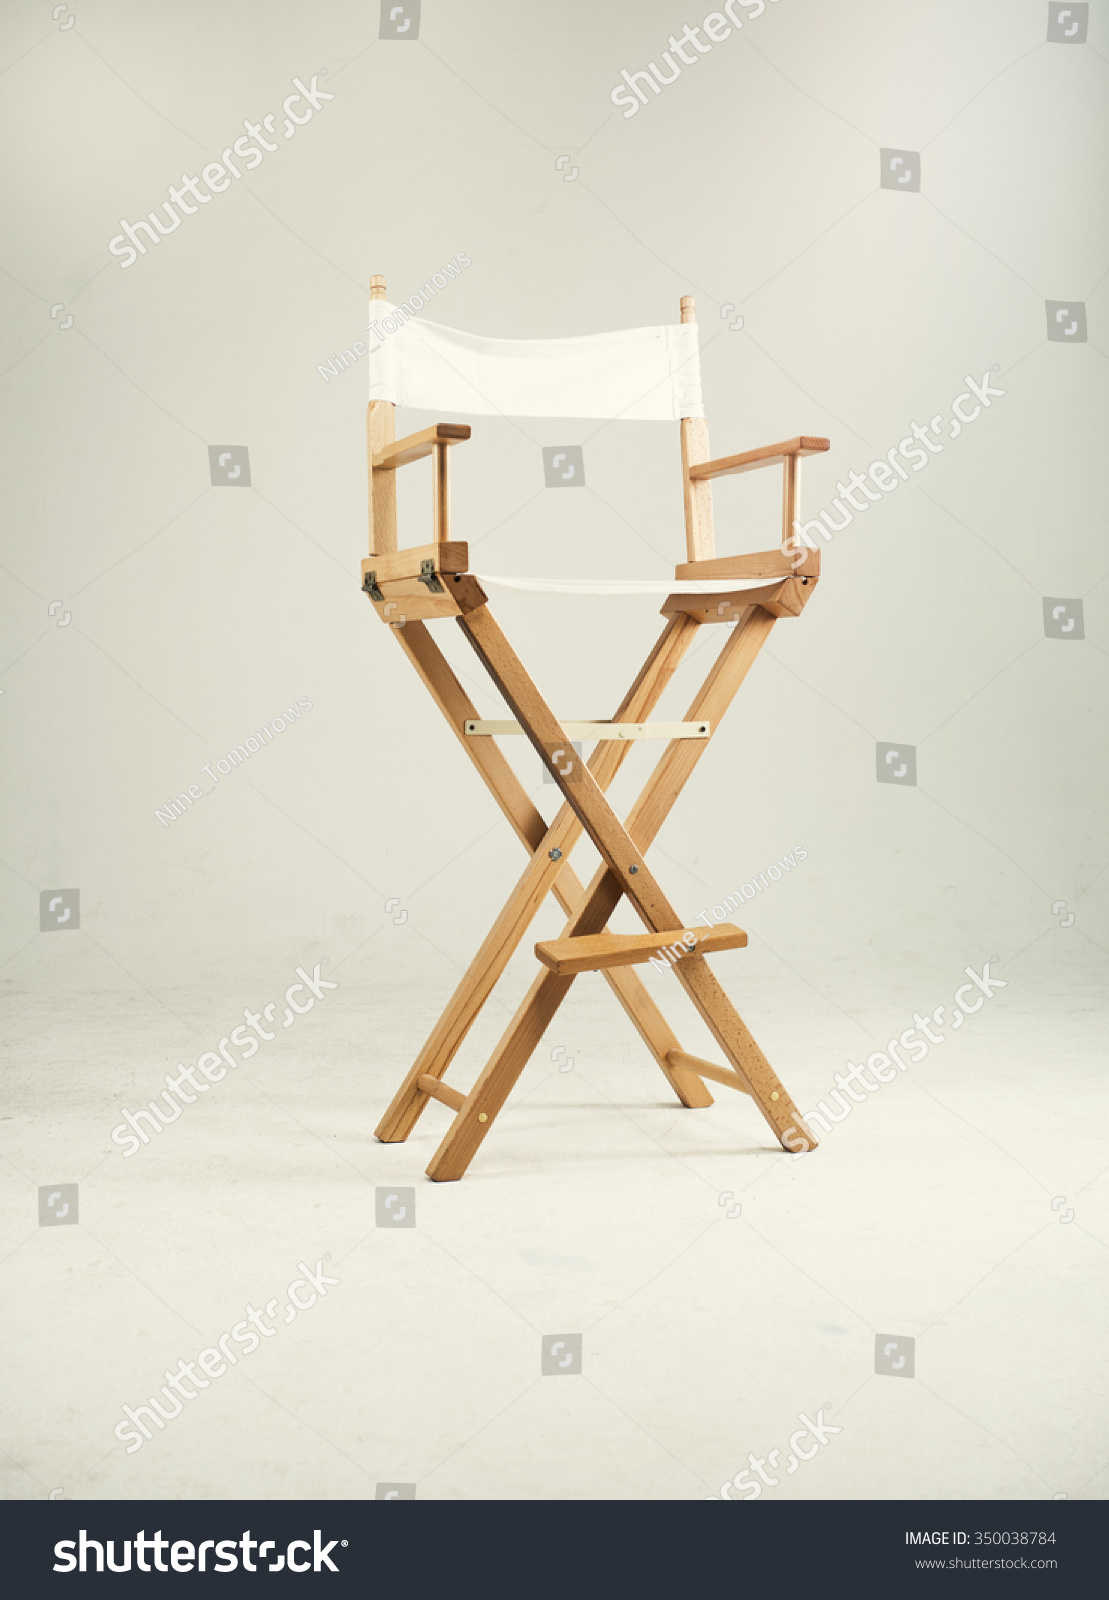 directors chair bar stool swing inside high director on stock photo edit now 350038784 white background shallow focus studio